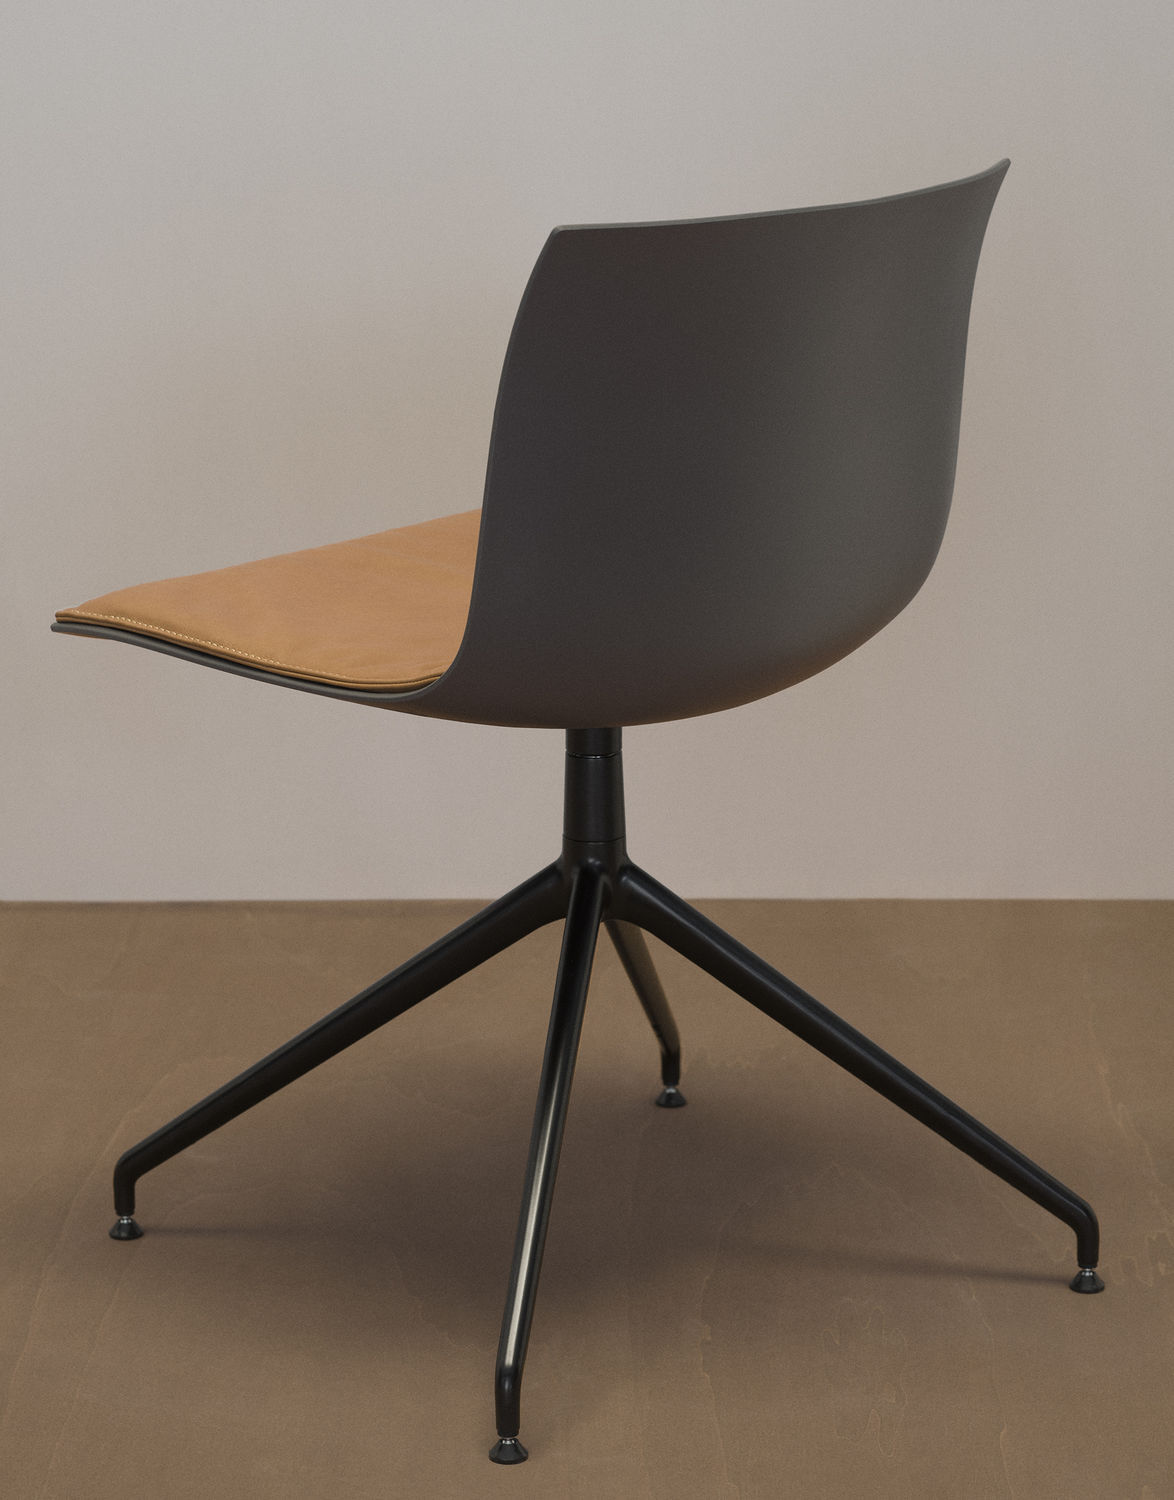 contemporary chair  fabric  leather  steel  catifa  new  -  contemporary chair  fabric  leather  steel catifa  new editionarper